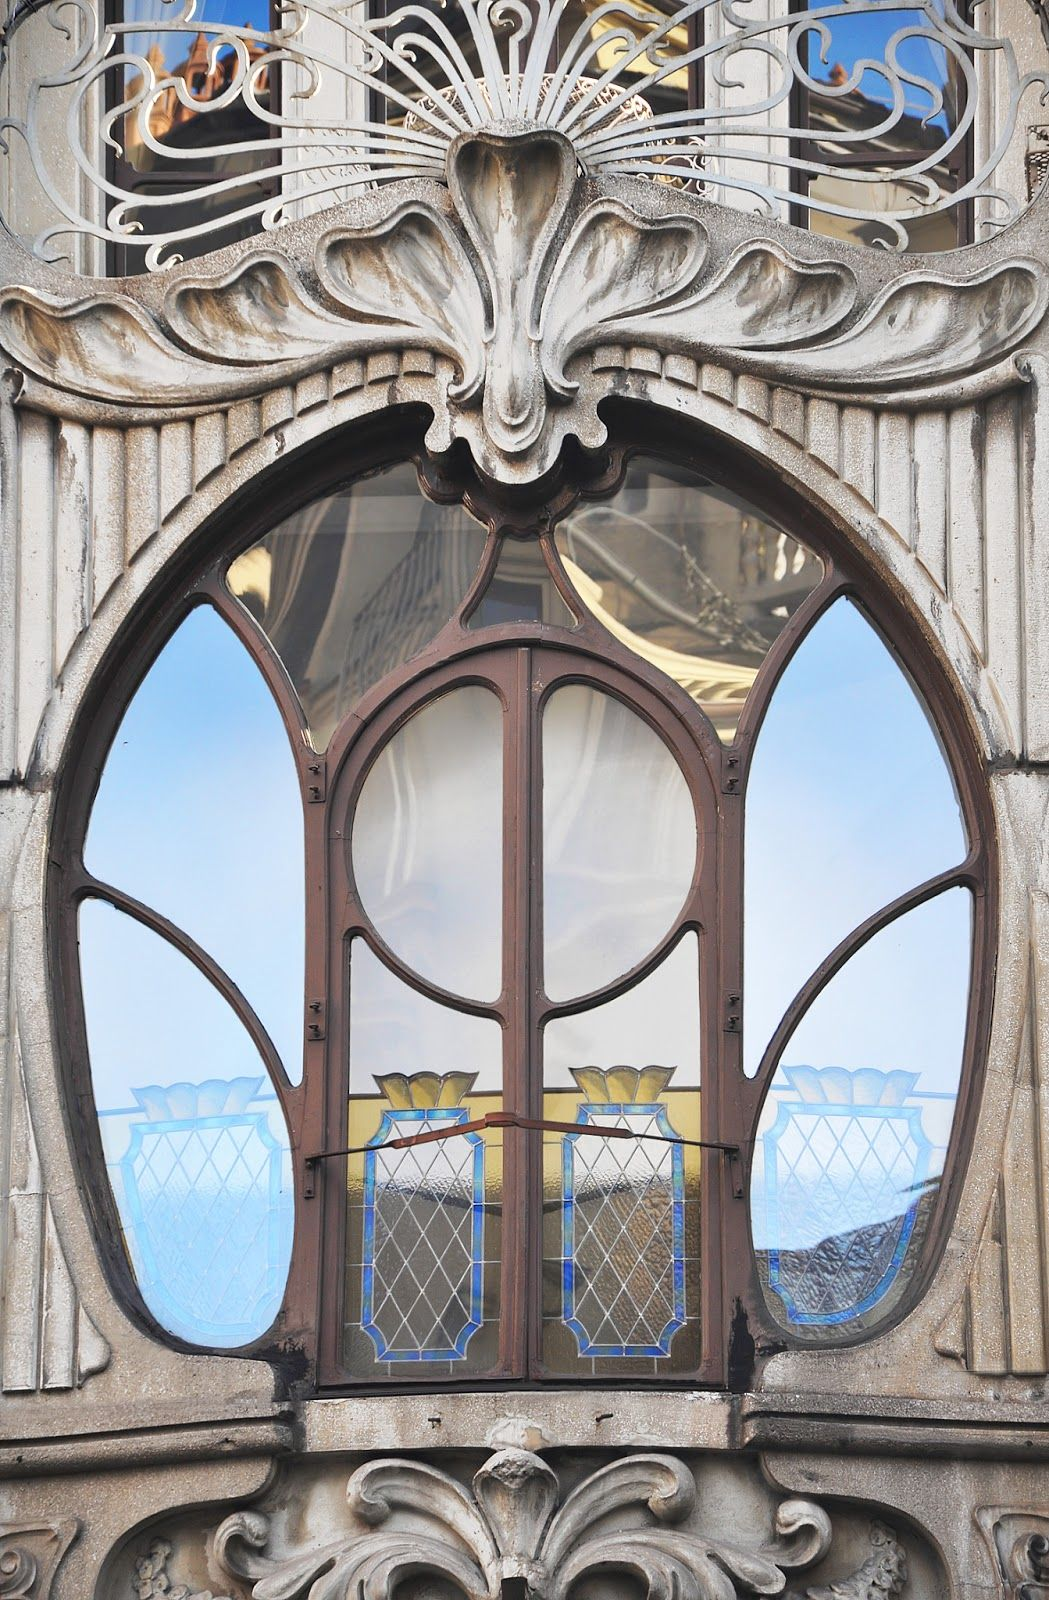 Window At Casa Florio Turin Italy Found Via Pinterest Originally From Here Here Is Your Chance Art Nouveau Architecture Art Nouveau Art Nouveau Design